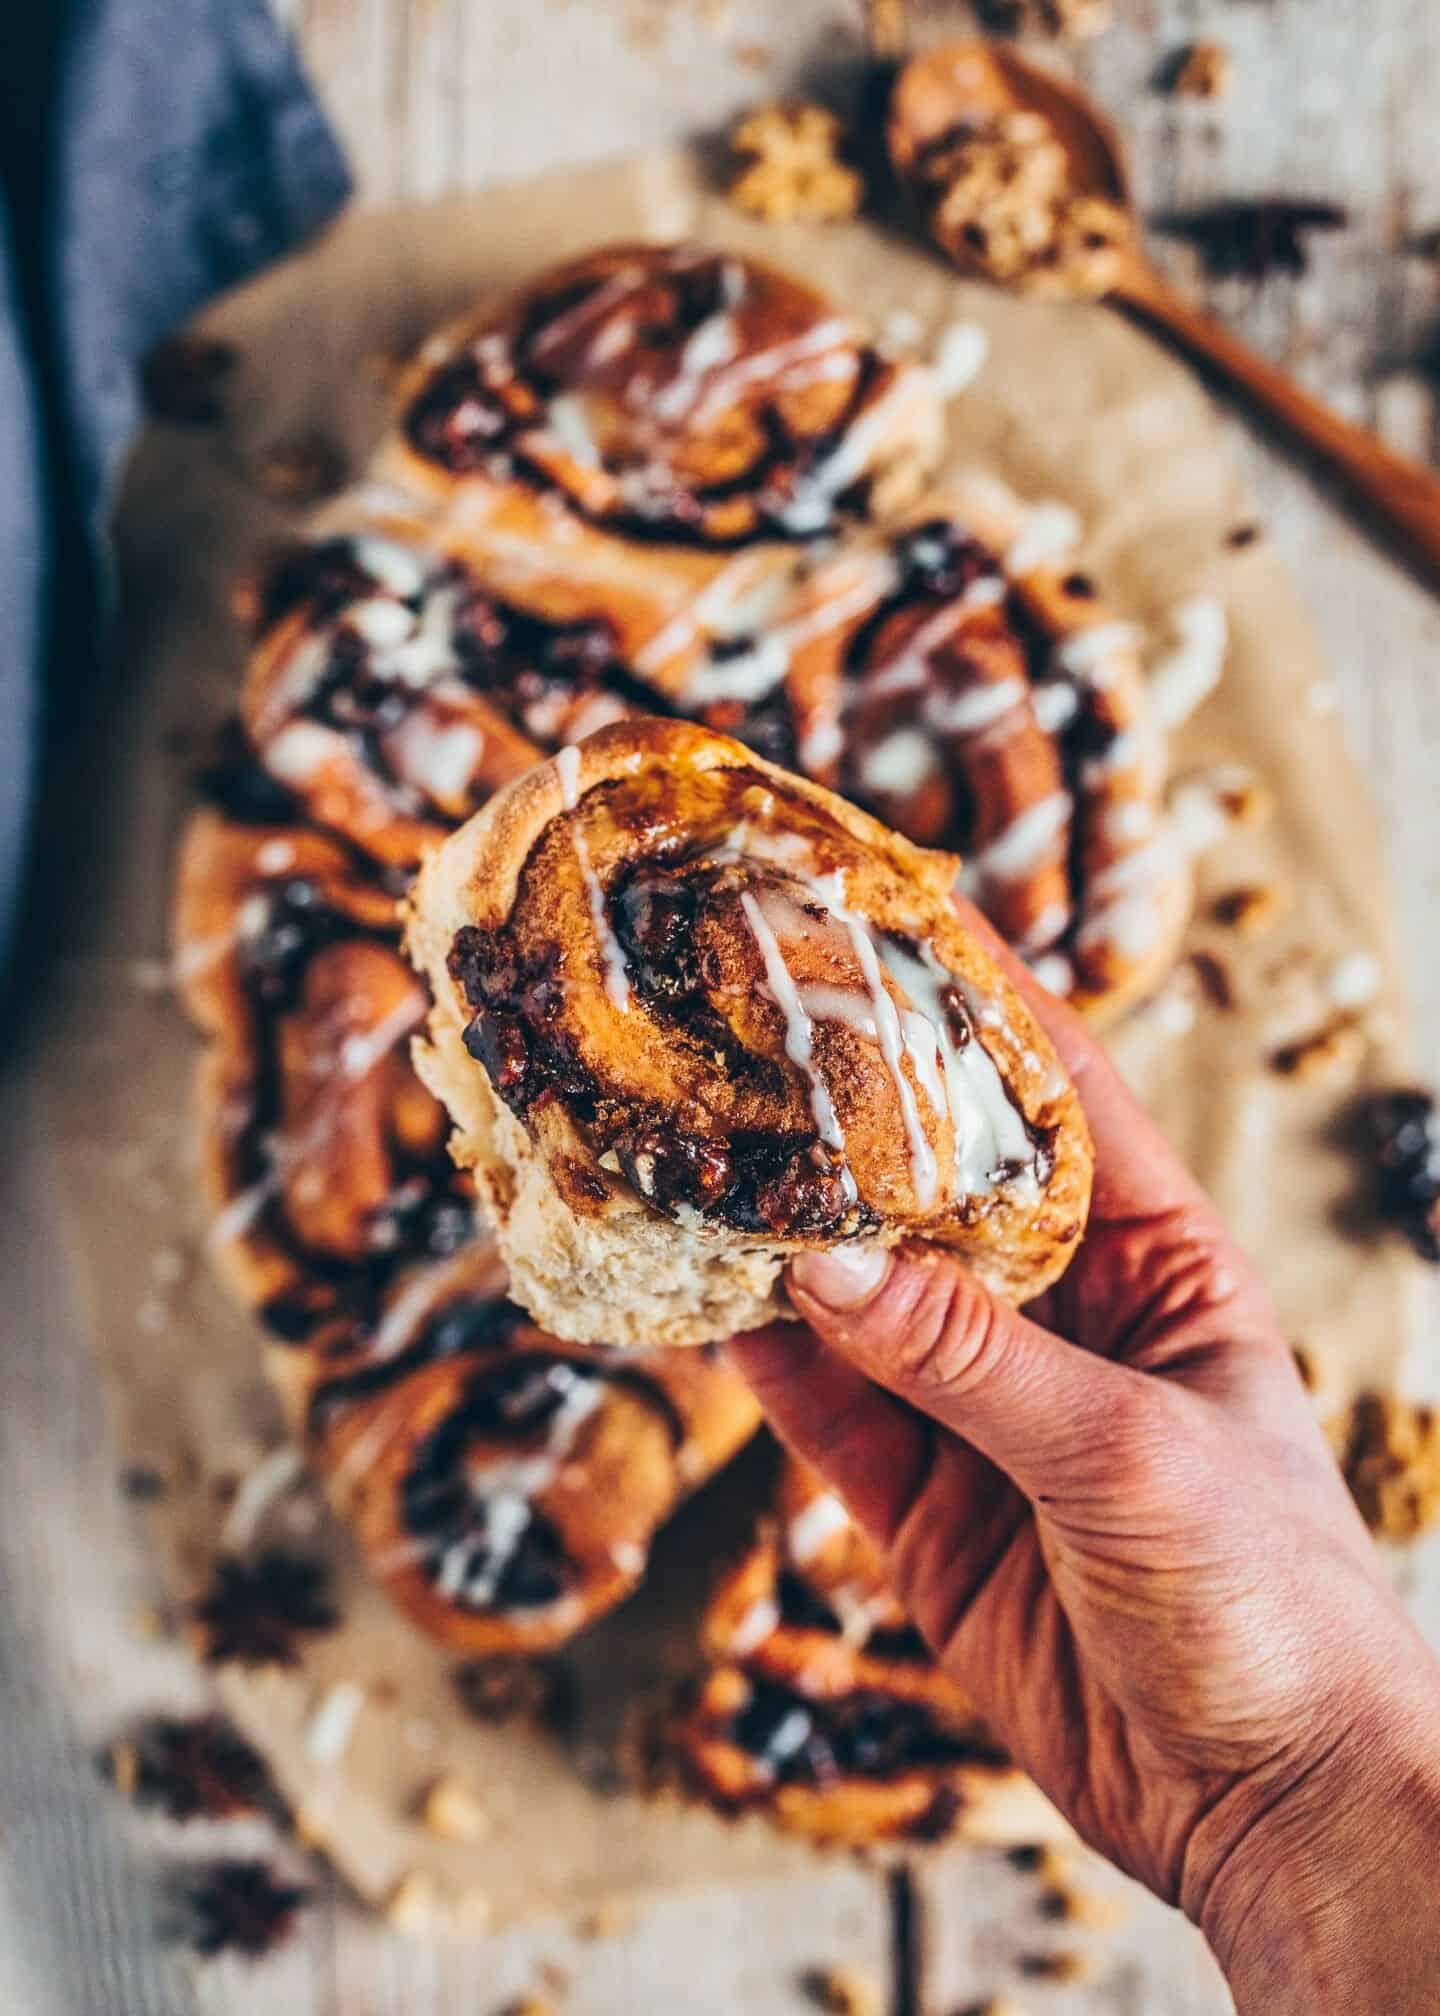 Best easy vegan cinnamon rolls with cashew frosting. They're soft, fluffy, and delicious. Furthermore, they're healthier than the average cinnamon buns are because they contain no white sugar, no eggs and are dairy-free! Ideal for a snack, breakfast or dessert.